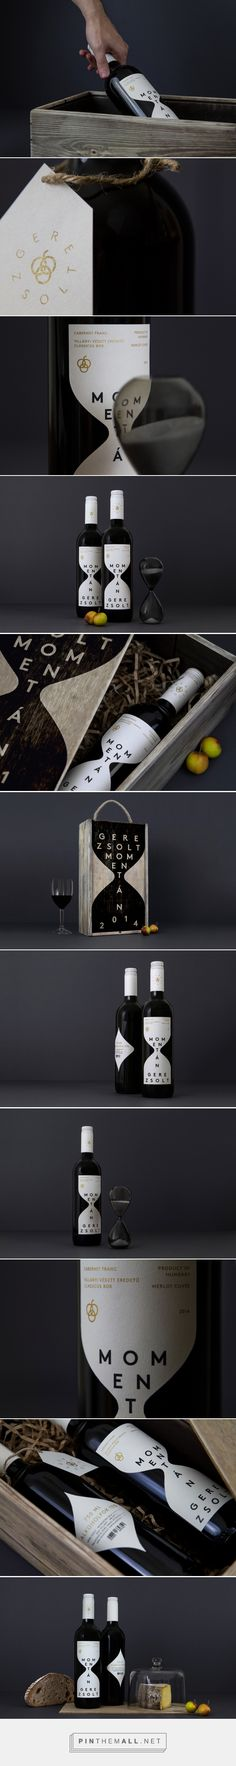 Momentán Wine Label (Concept) - Packaging of the World - Creative Package Design Gallery - http://www.packagingoftheworld.com/2016/10/momentan-wine-label-concept.html